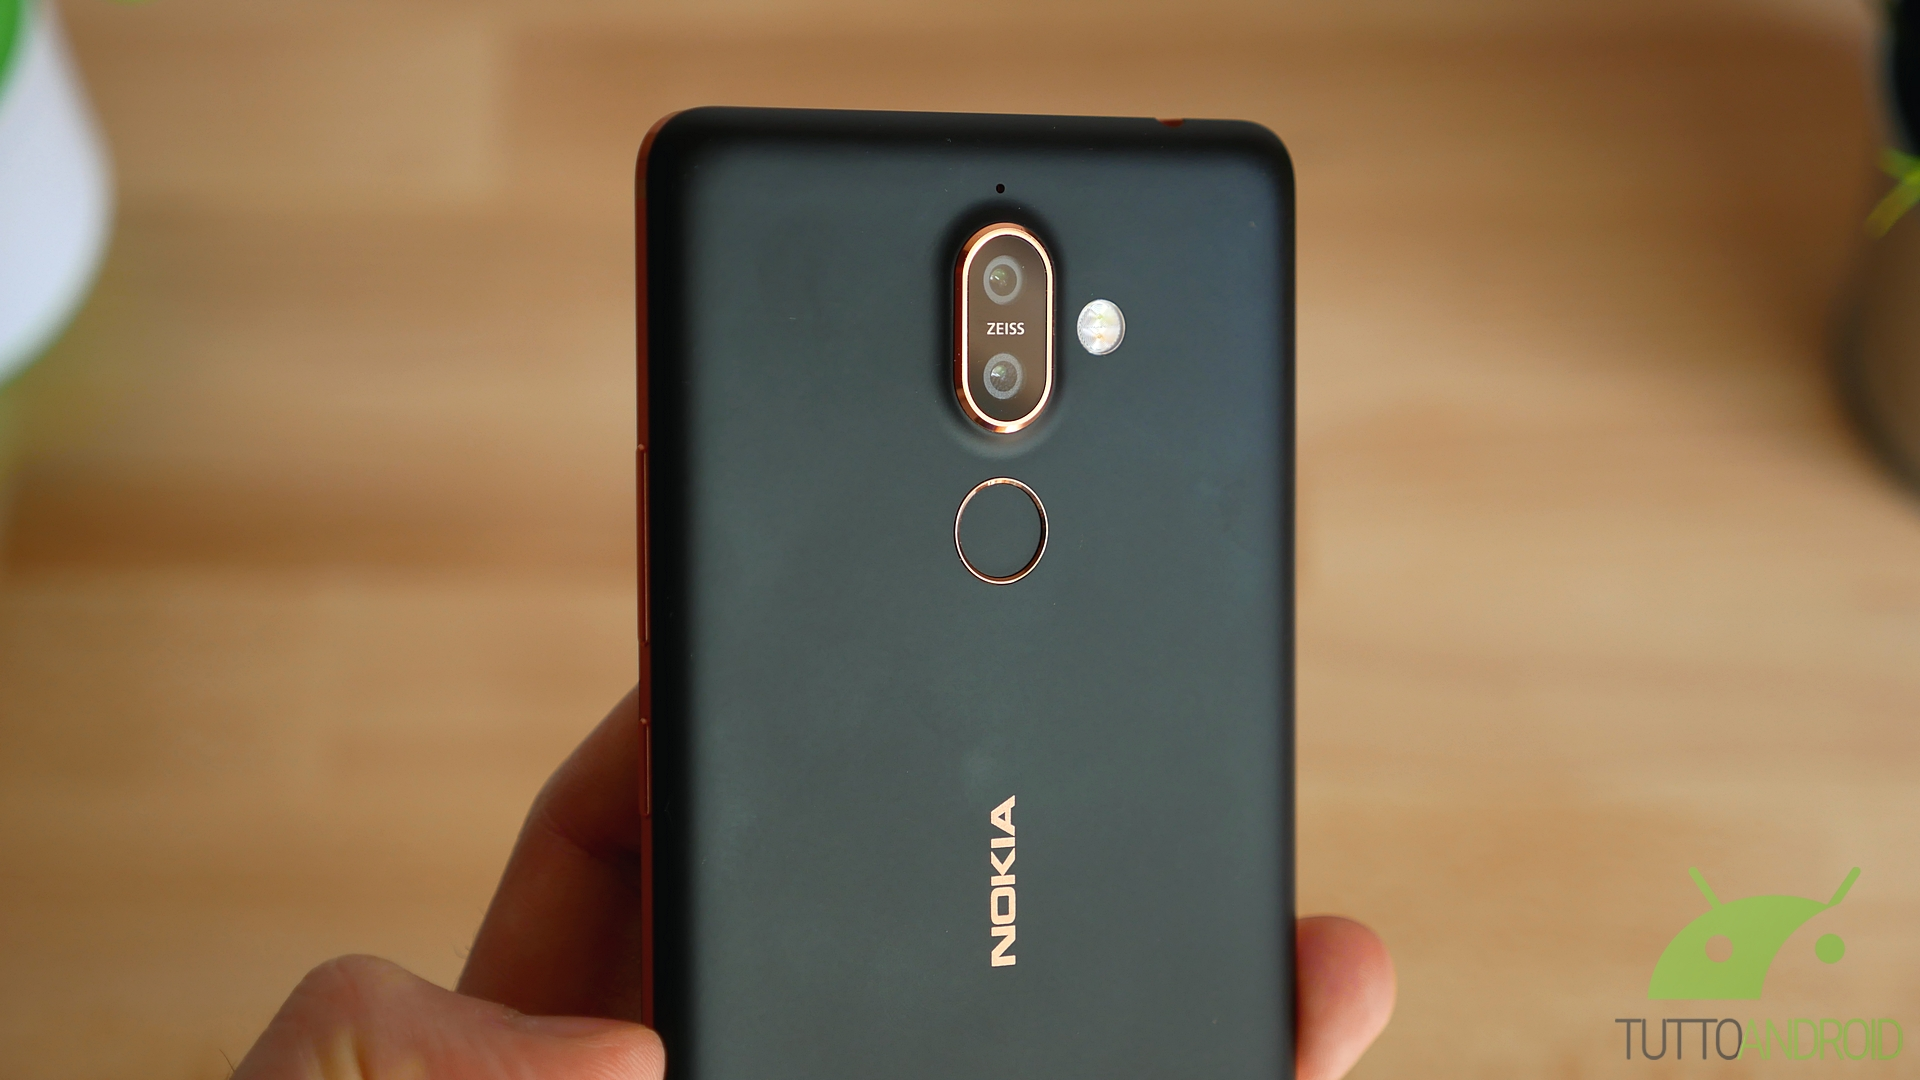 Nokia 7 Plus riceve la Developer Preview 3.190 di Android 9 Pie con le ultime patch (e non solo)